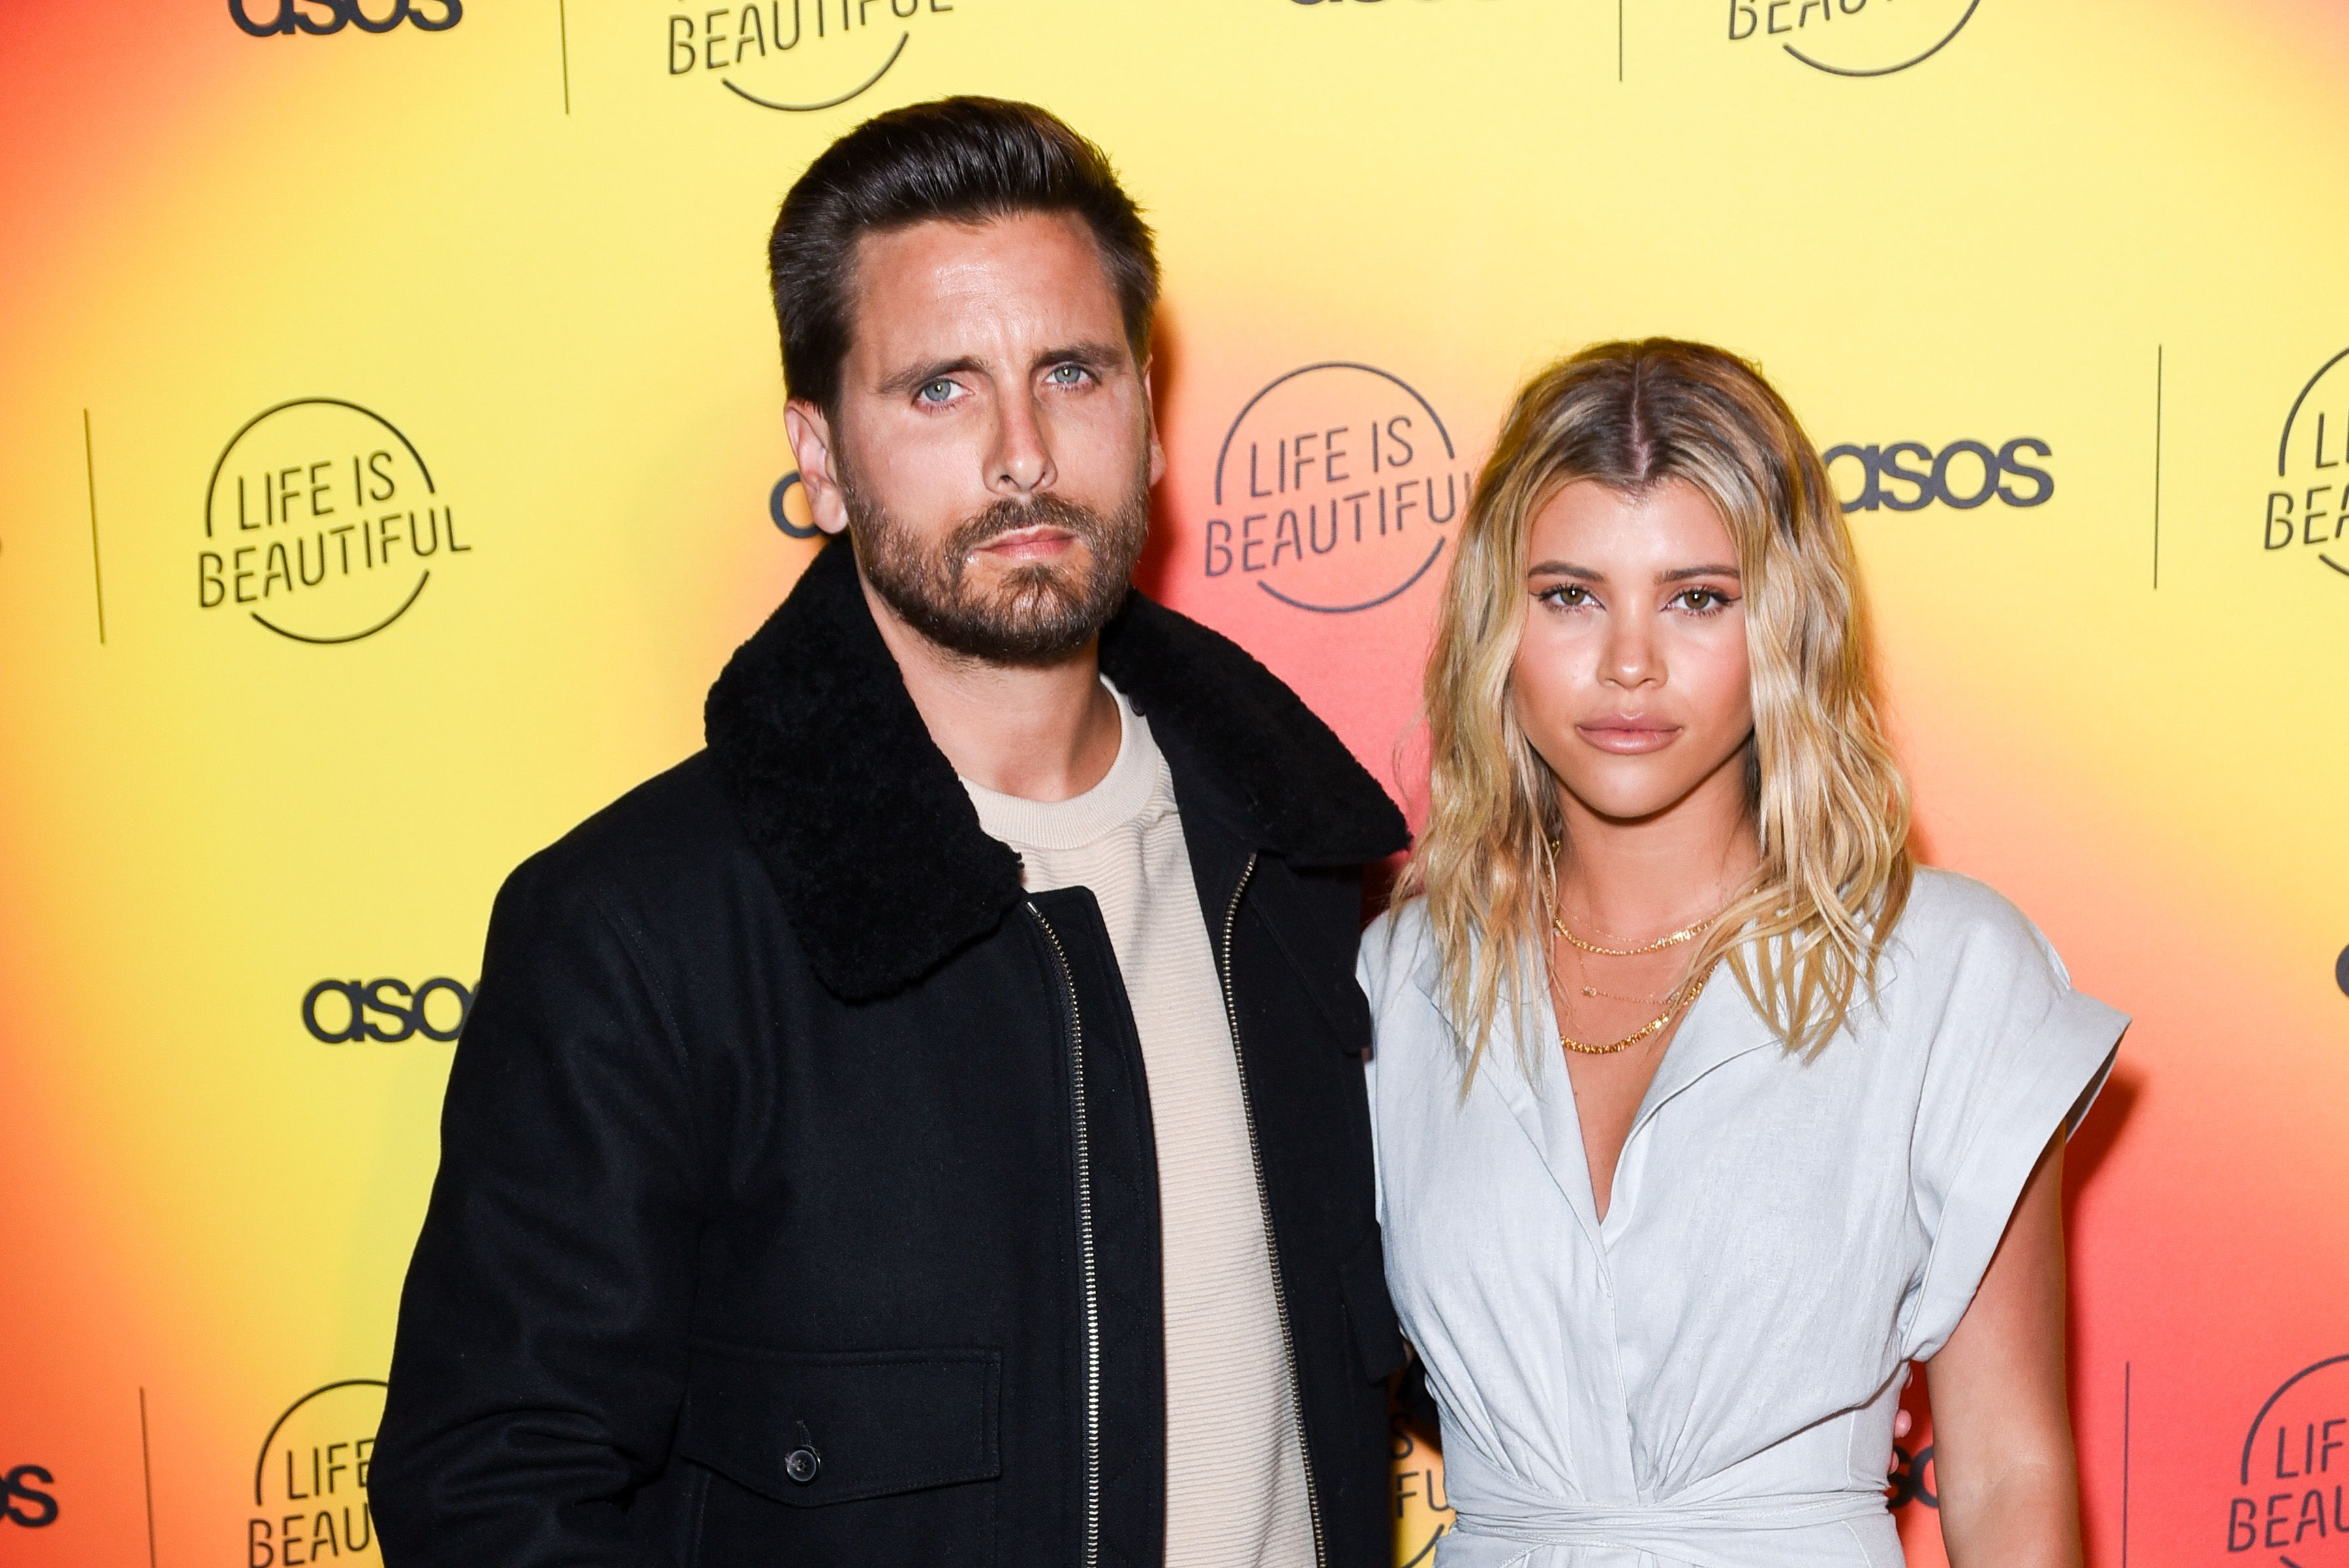 Scott Disick and Sofia Richie photographed together